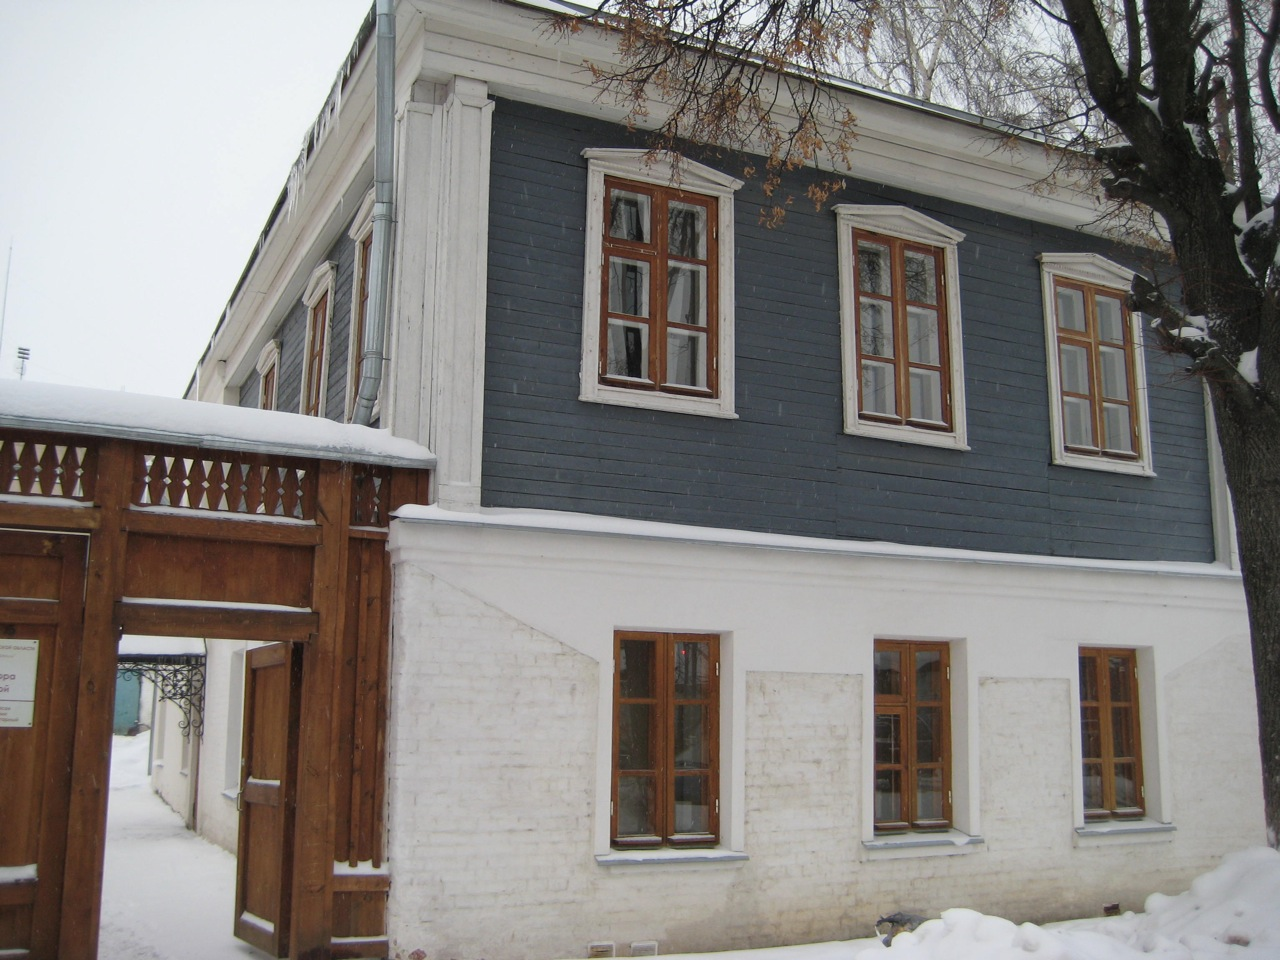 landmark-of-the-week-golubkina-house-museum-in-zaraisk